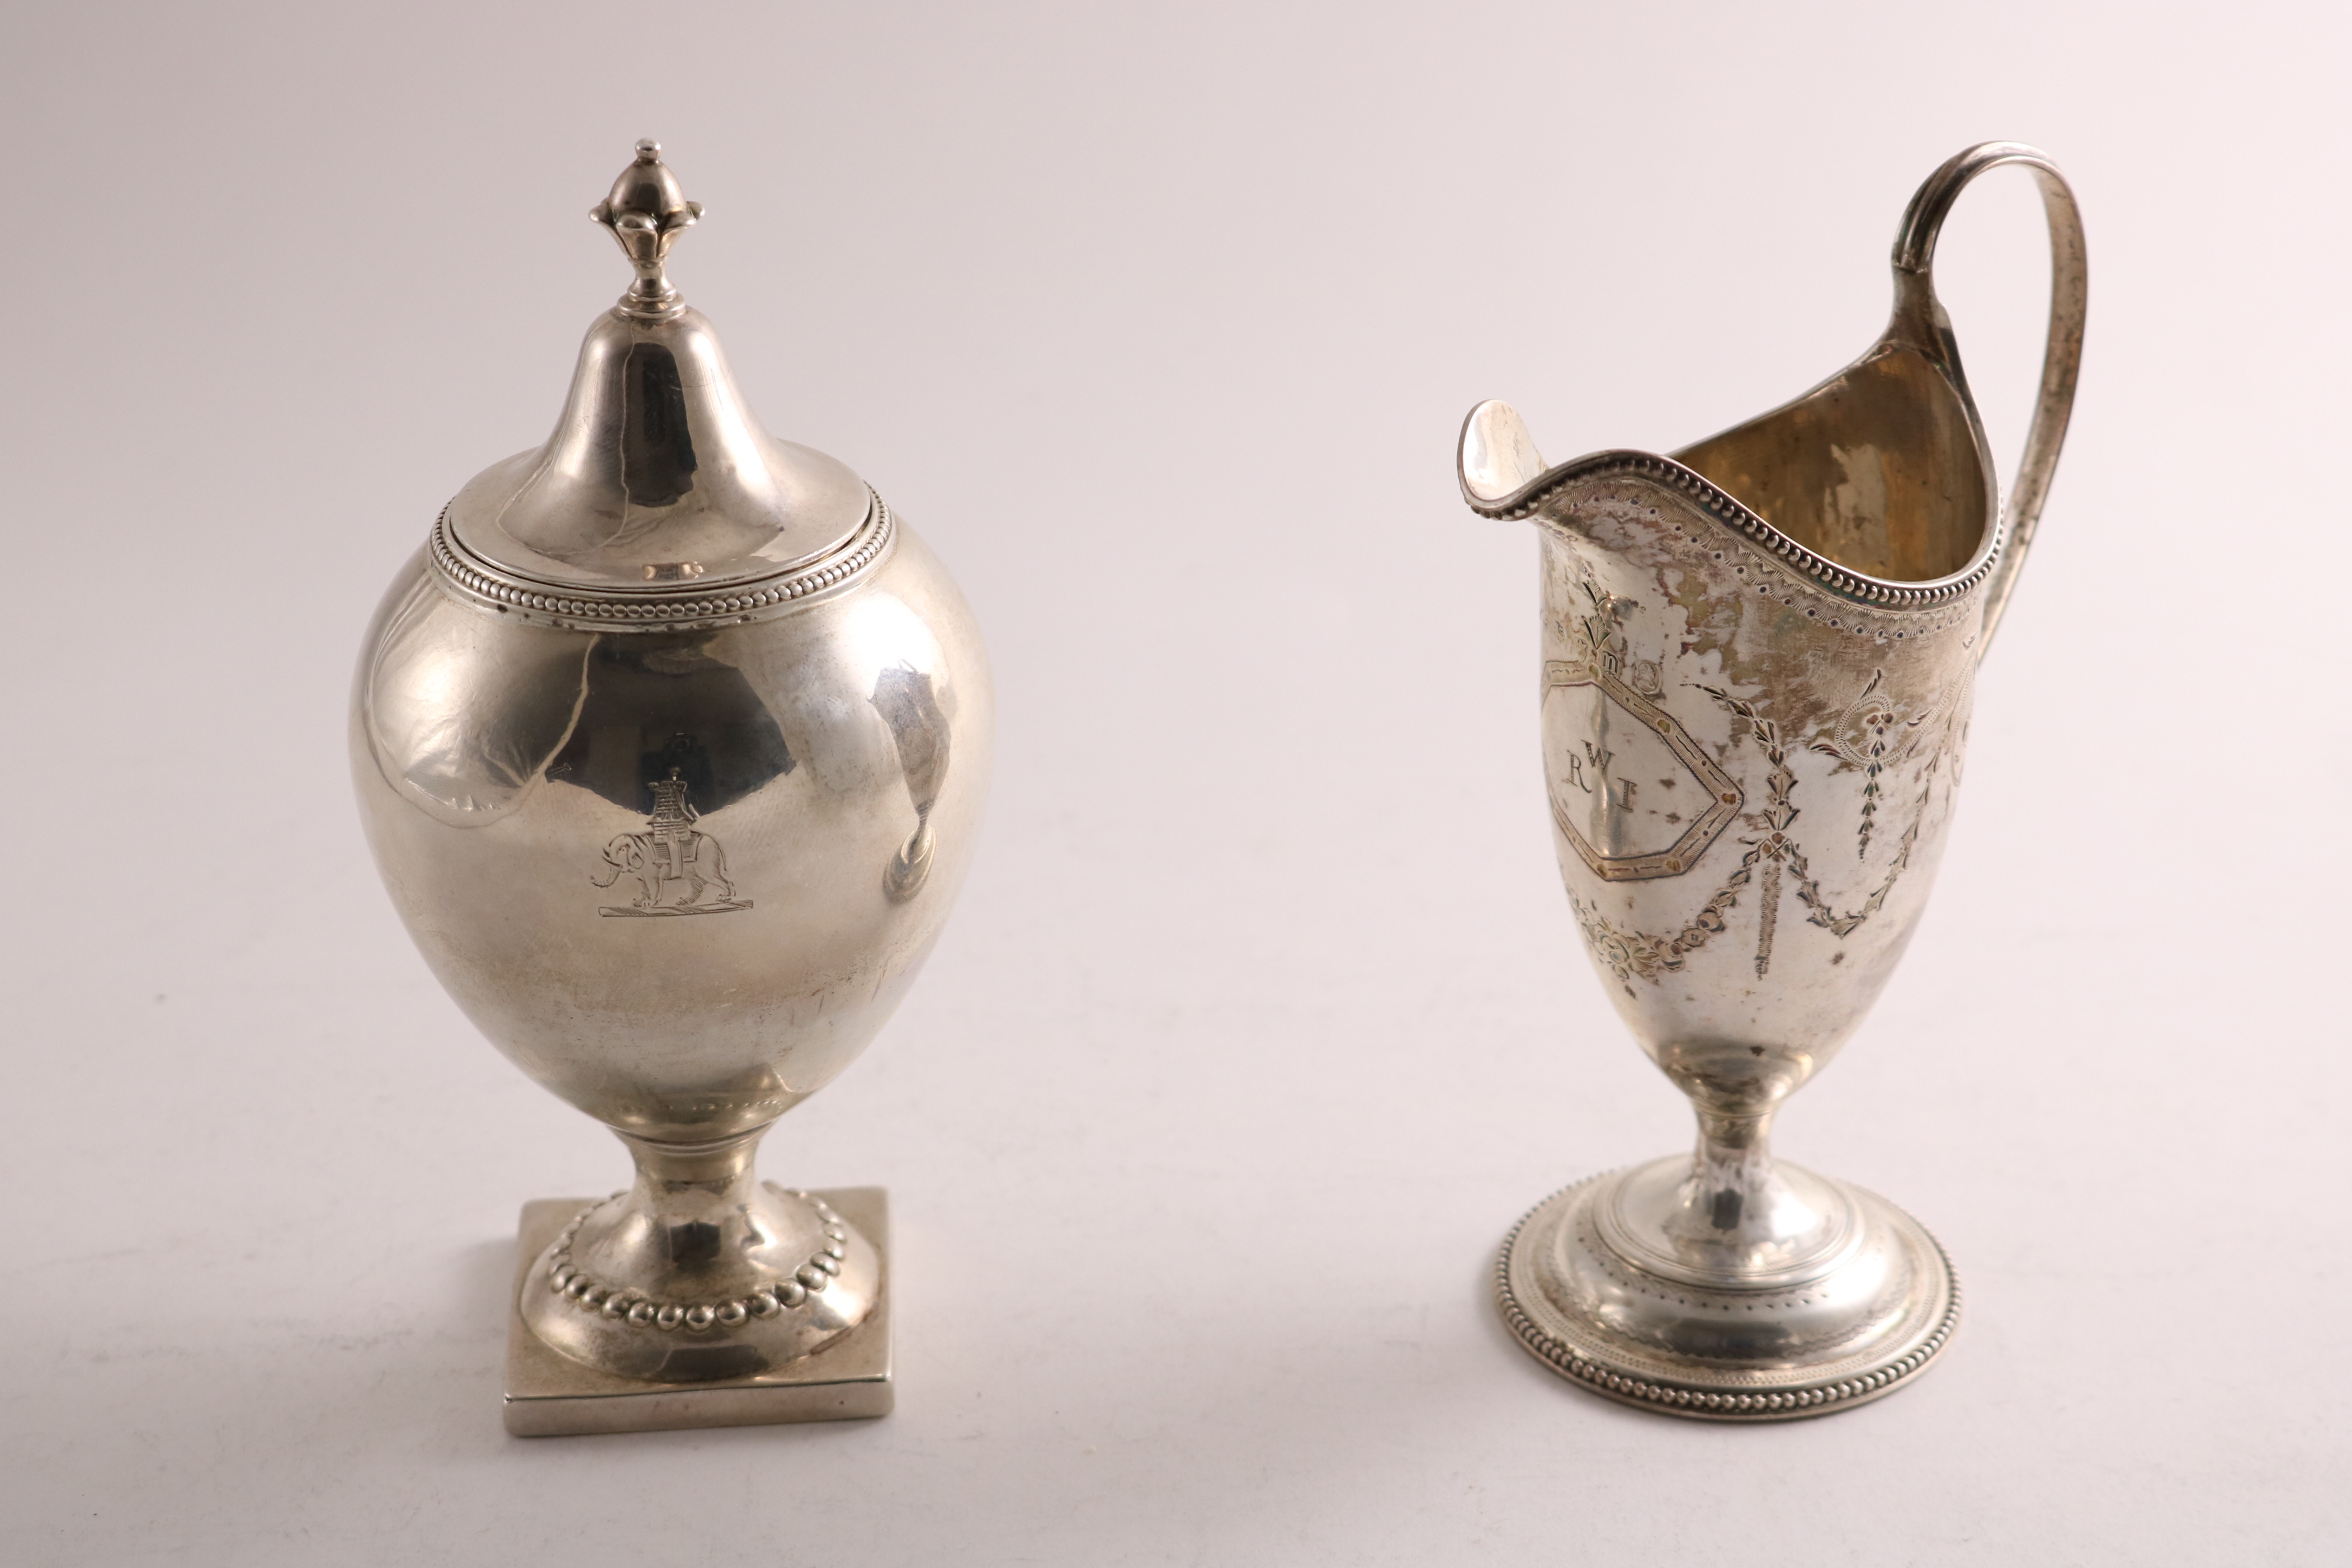 Lot 43 - A GEORGE III SILVER SUGAR VASE with an oviform body, square pedestal foot and bead borders, crested,